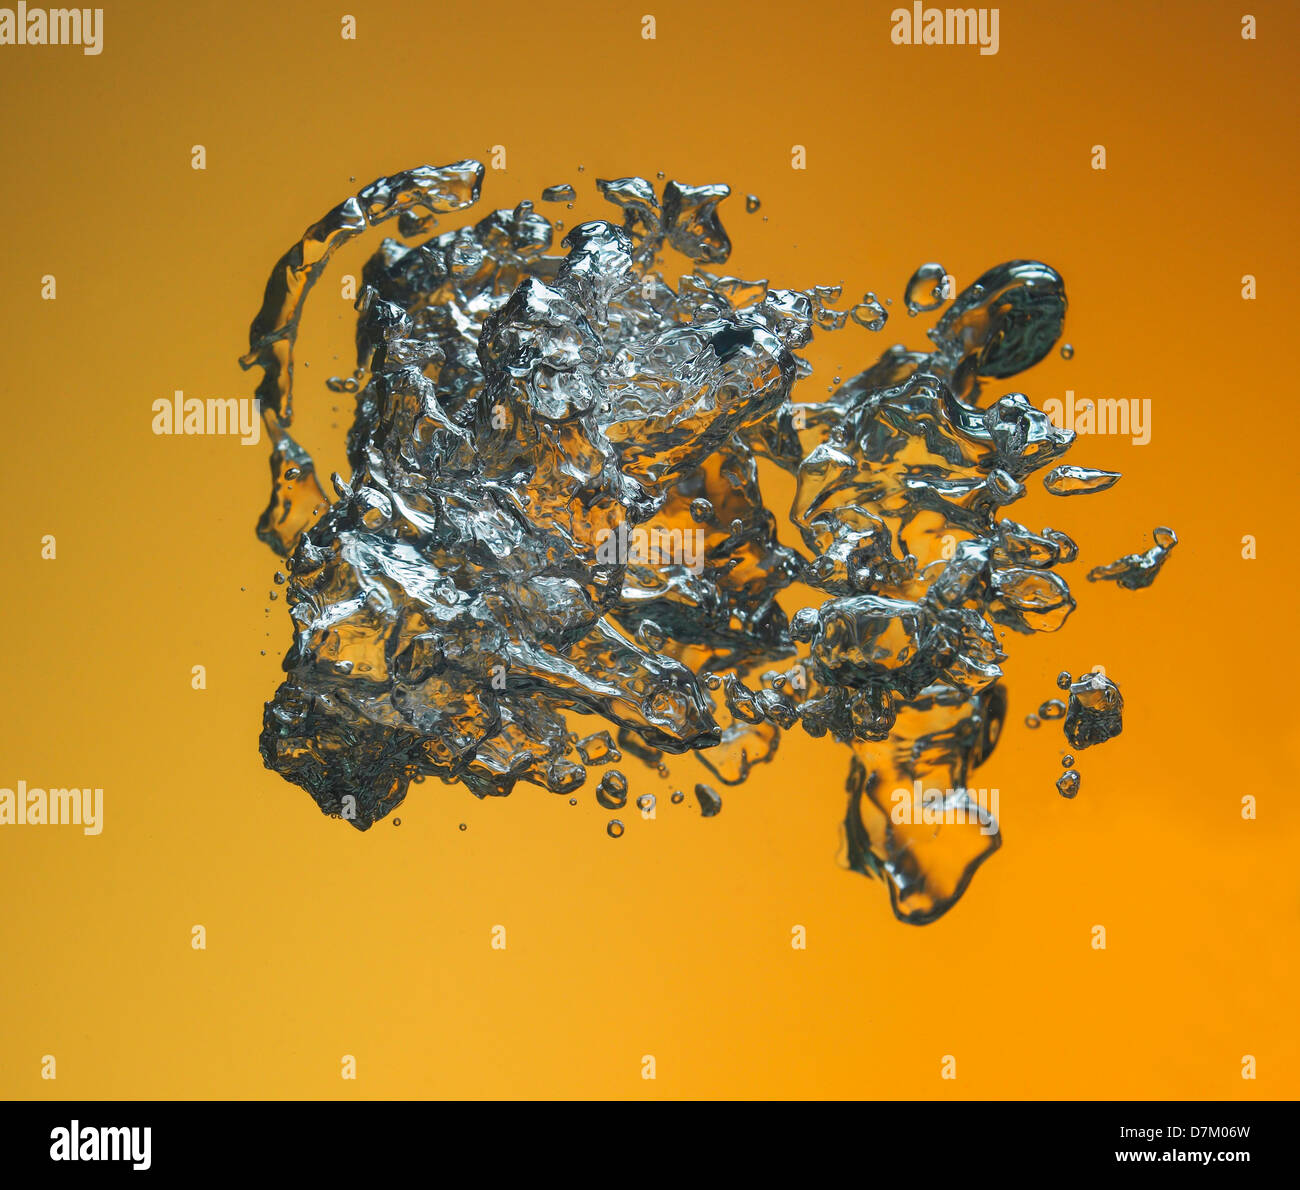 Water Spashes and bubbles - Stock Image